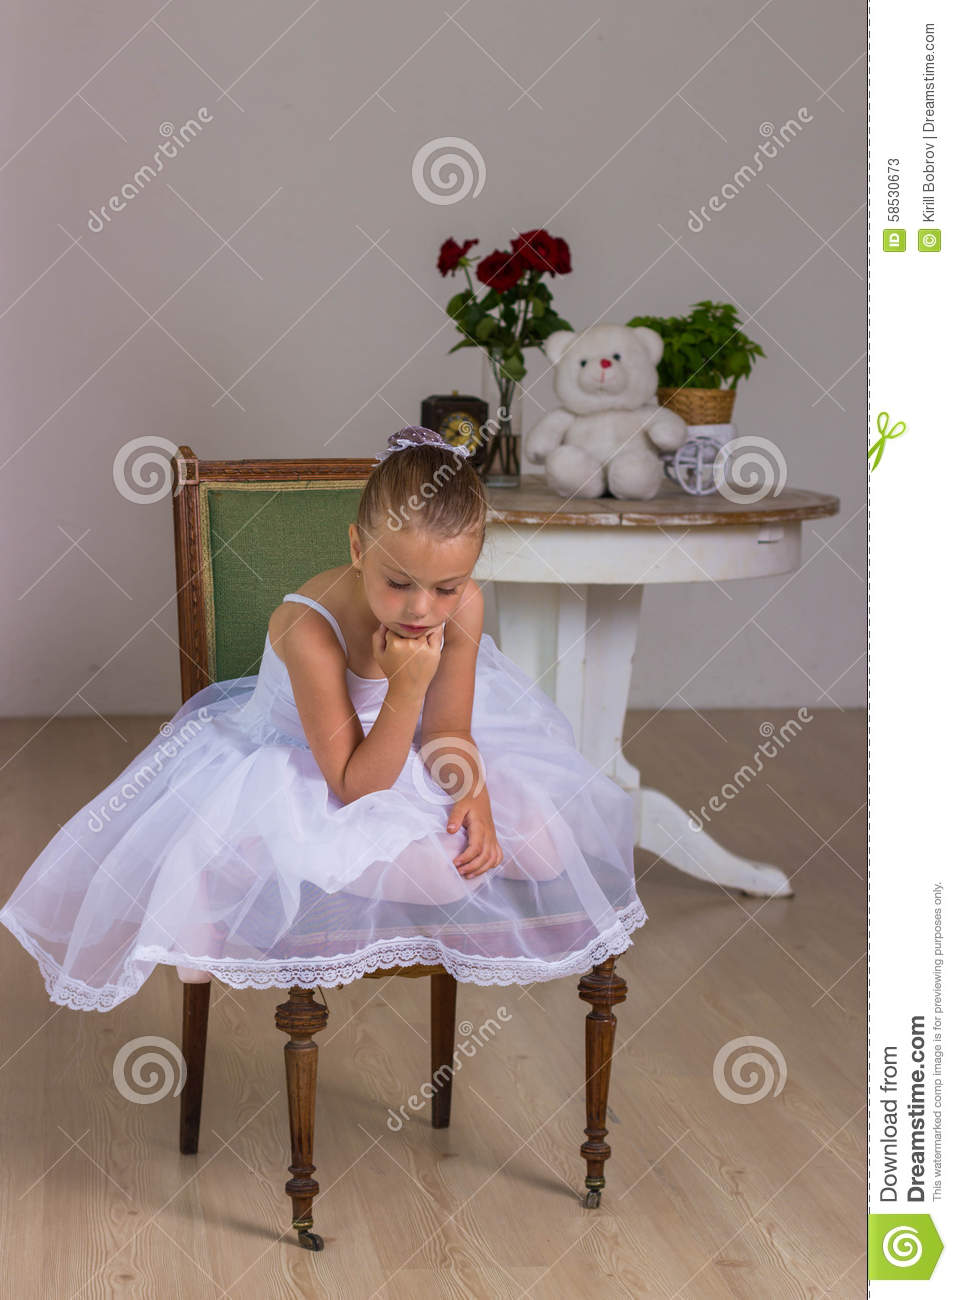 a3ccc1169 Cute Little Ballerina In A White Dress Sitting Stock Image - Image ...